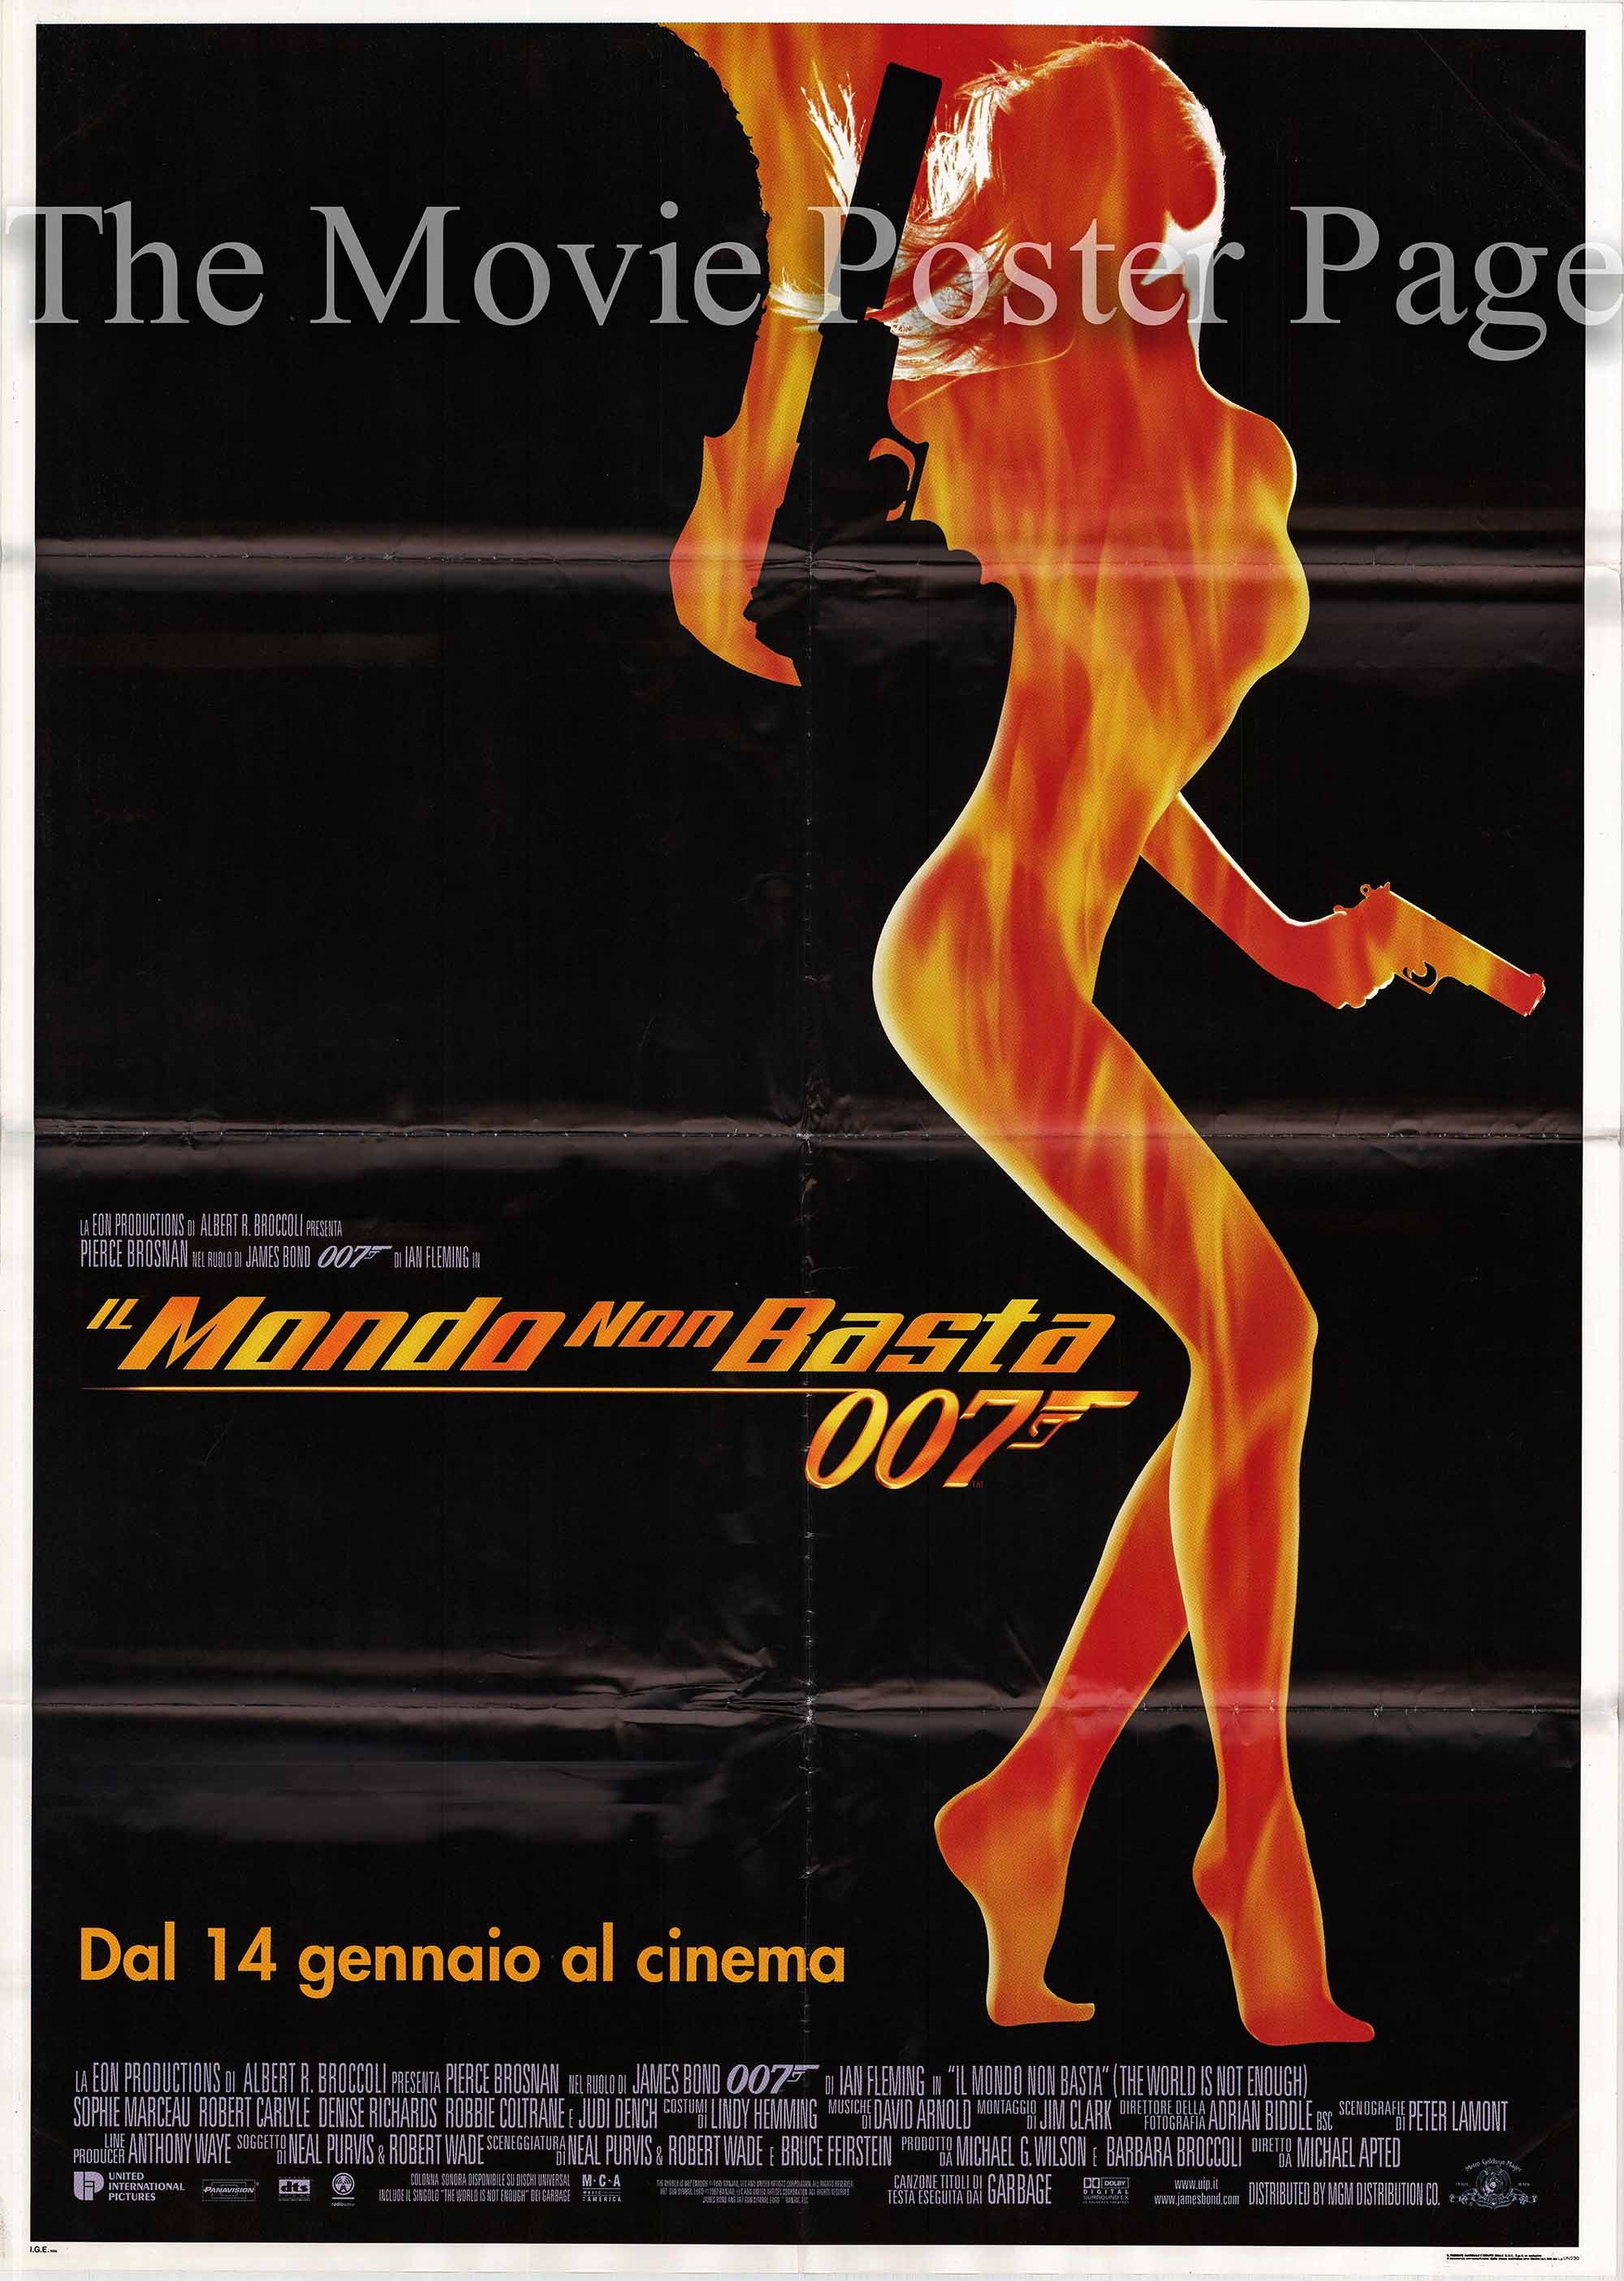 Pictured is an Italian two-sheet promotional poster for the 1999 Michael Apted film the World is Not Enough starring Pierce Brosnan as James Bond.